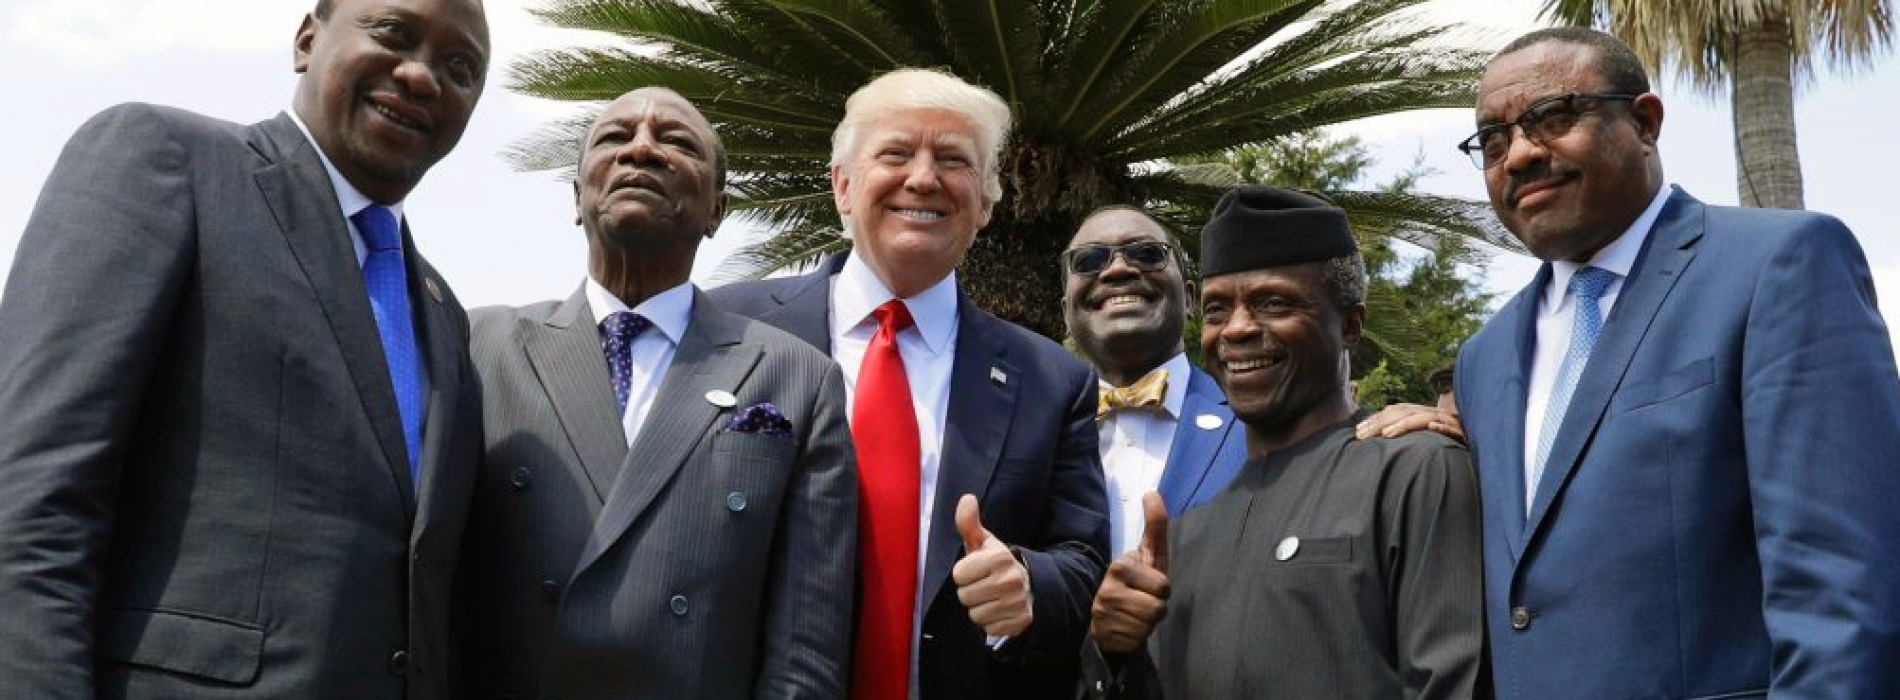 USA-Africa: From Obamania to Trumphobia